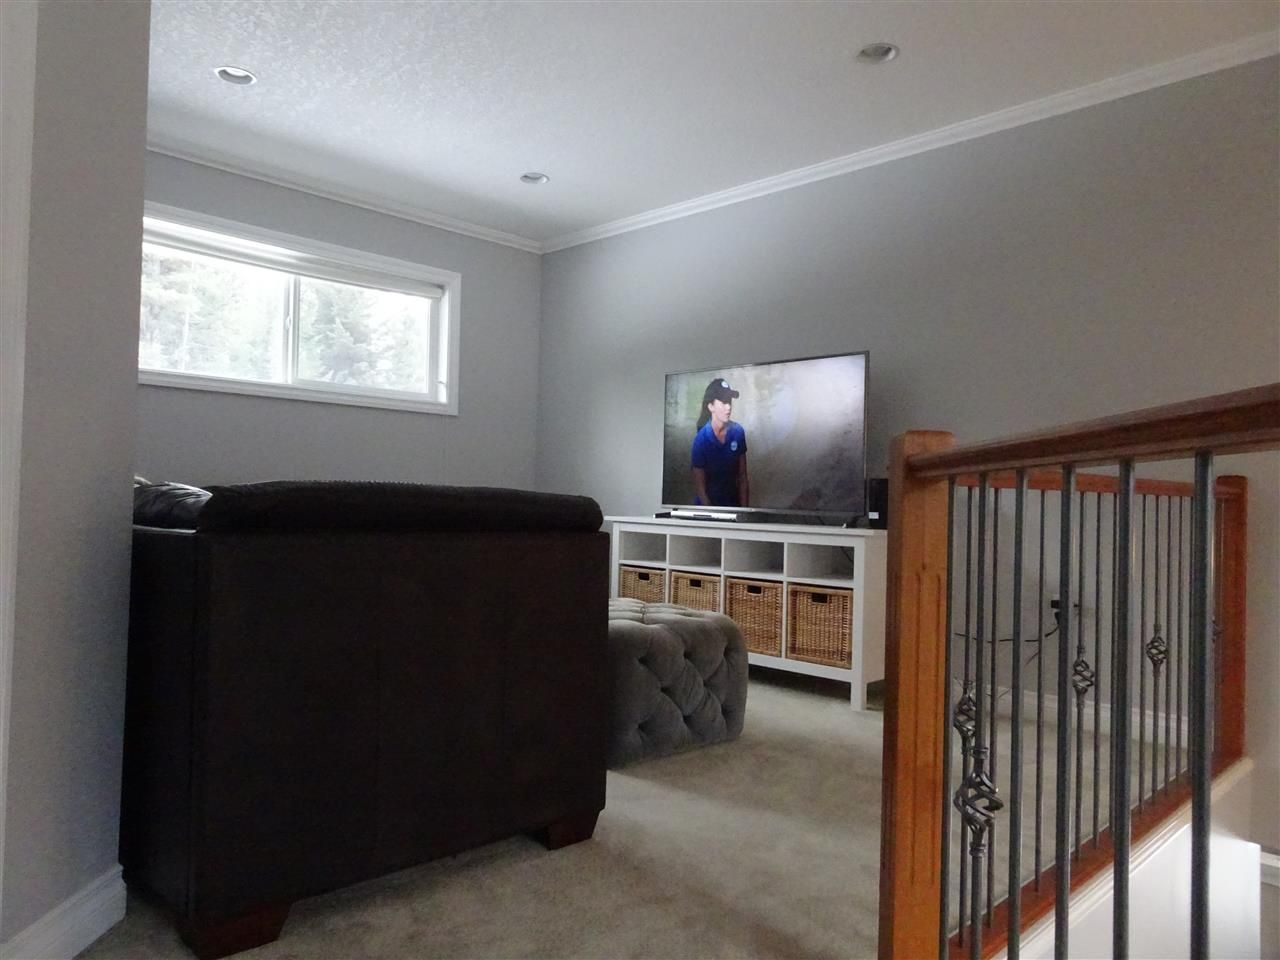 """Photo 10: Photos: 6447 BENCH Drive in Prince George: Nechako Bench House for sale in """"NORTH NECHAKO"""" (PG City North (Zone 73))  : MLS®# R2250059"""